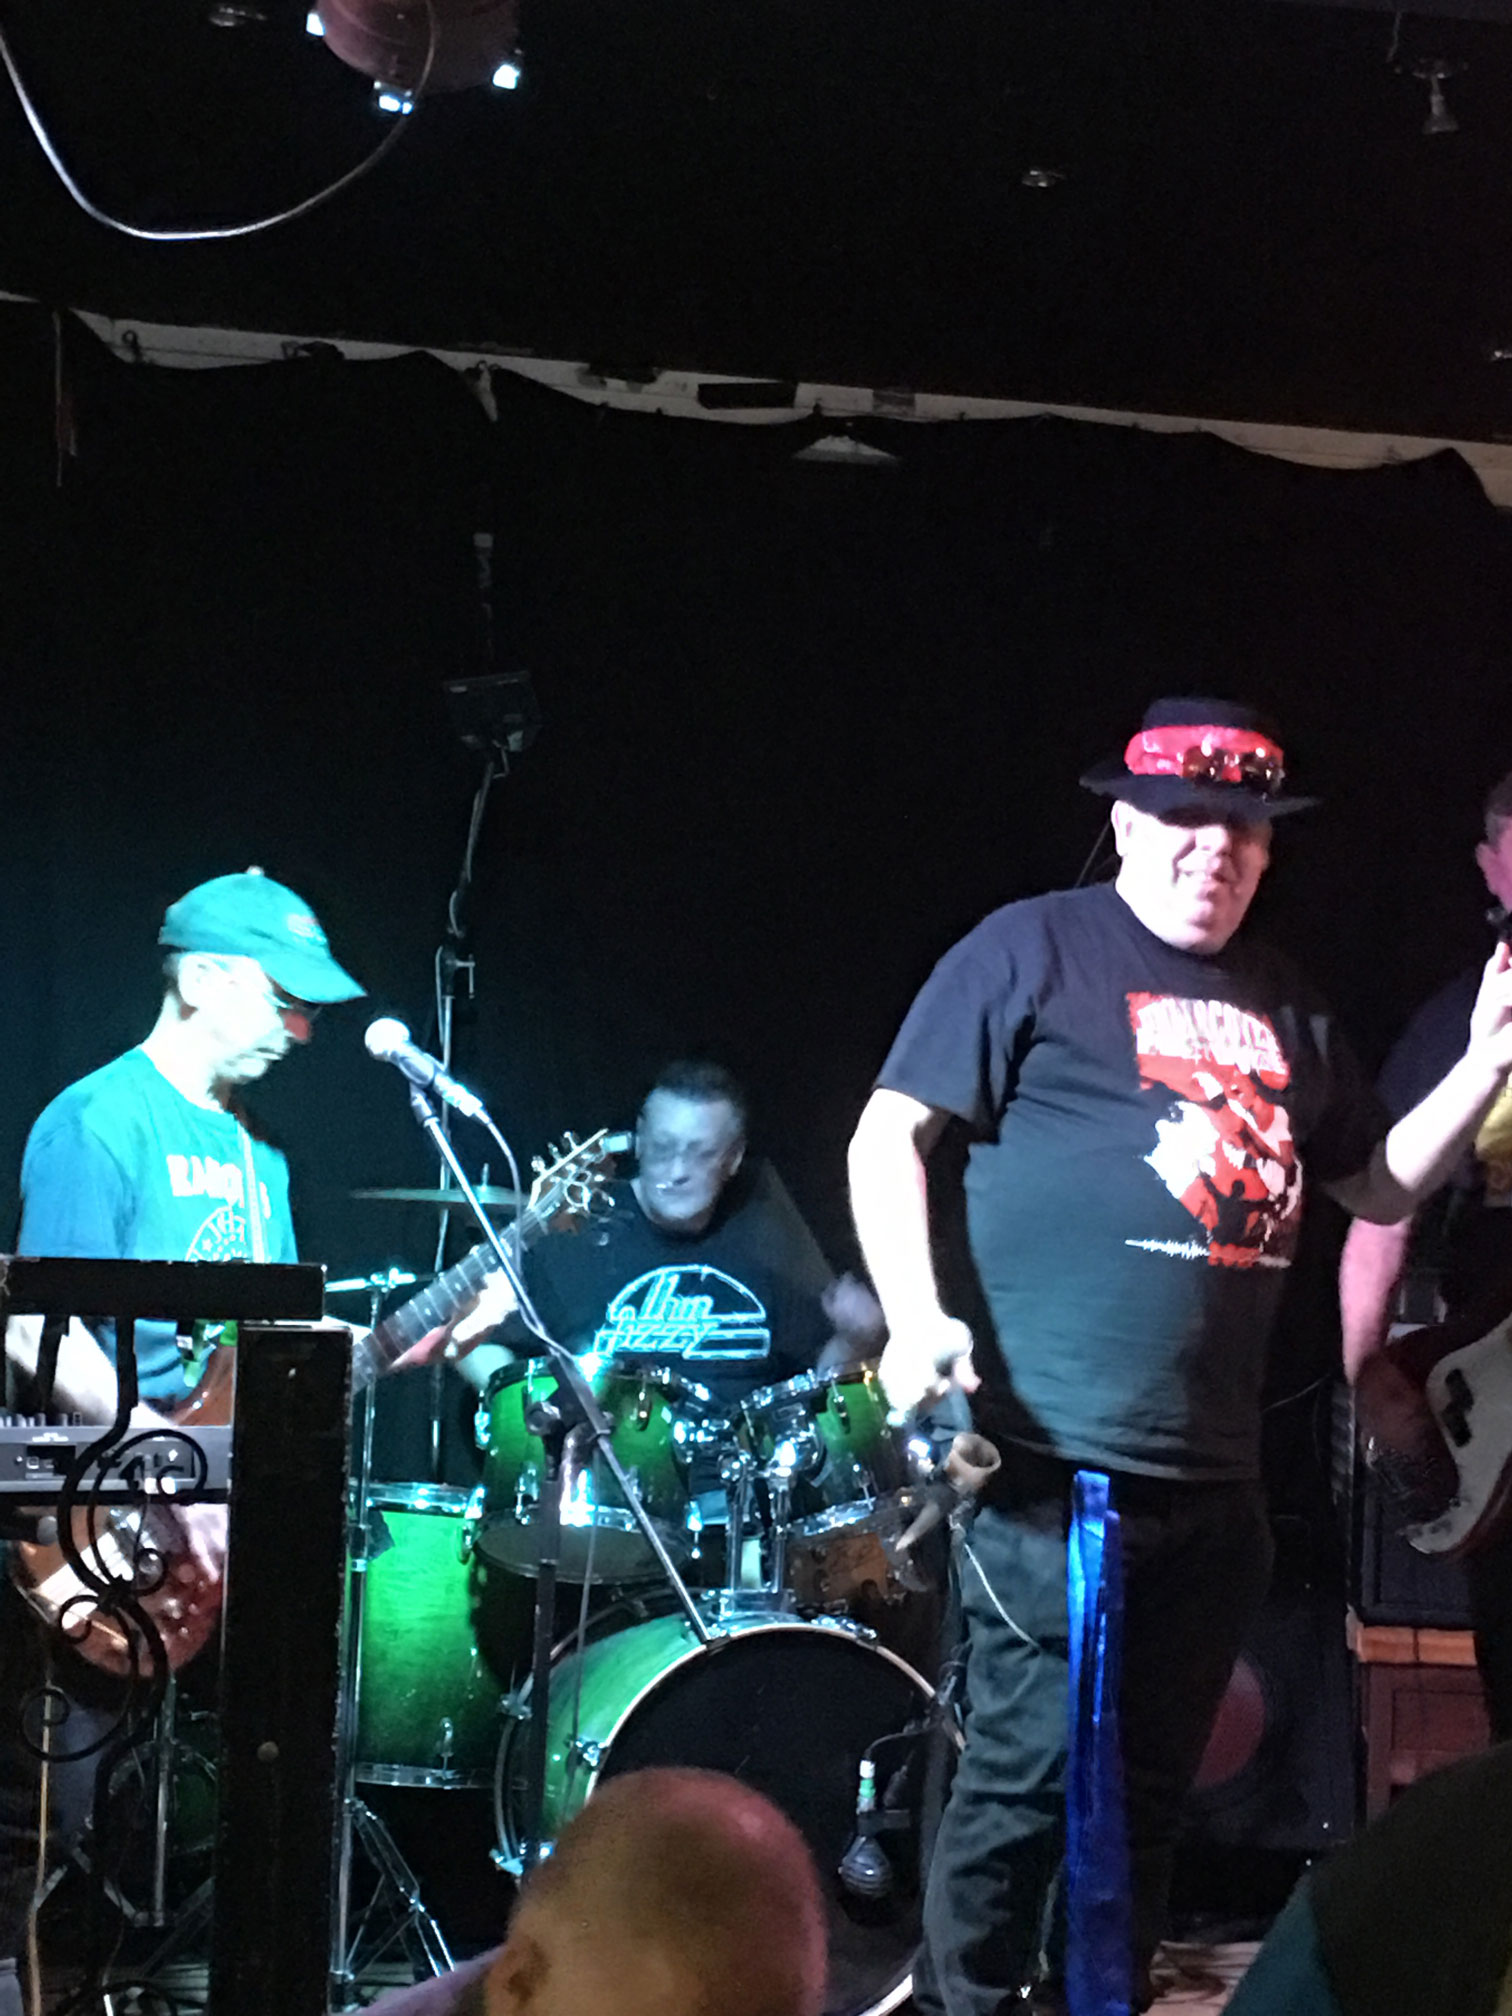 N5 Live at The Gunners - 25 November 2017